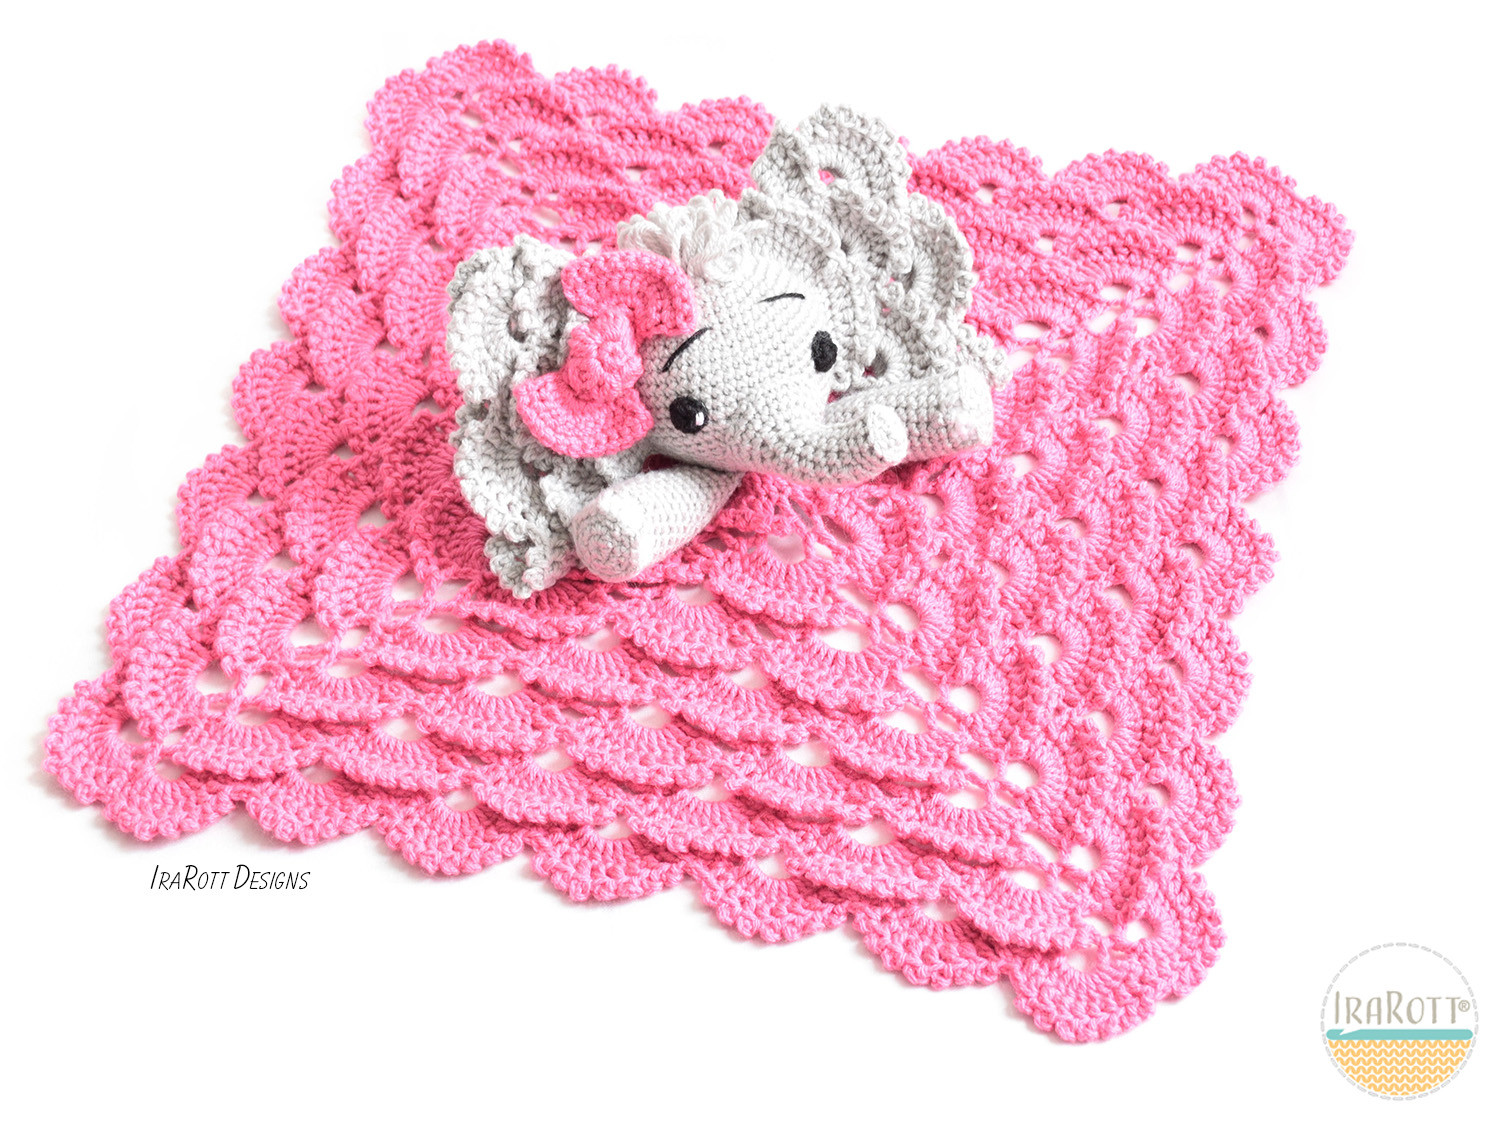 Crochet Elephant Blanket Lovely Josefina and Jeffery Elephant Security Blanket Pdf Crochet Of Awesome 44 Ideas Crochet Elephant Blanket